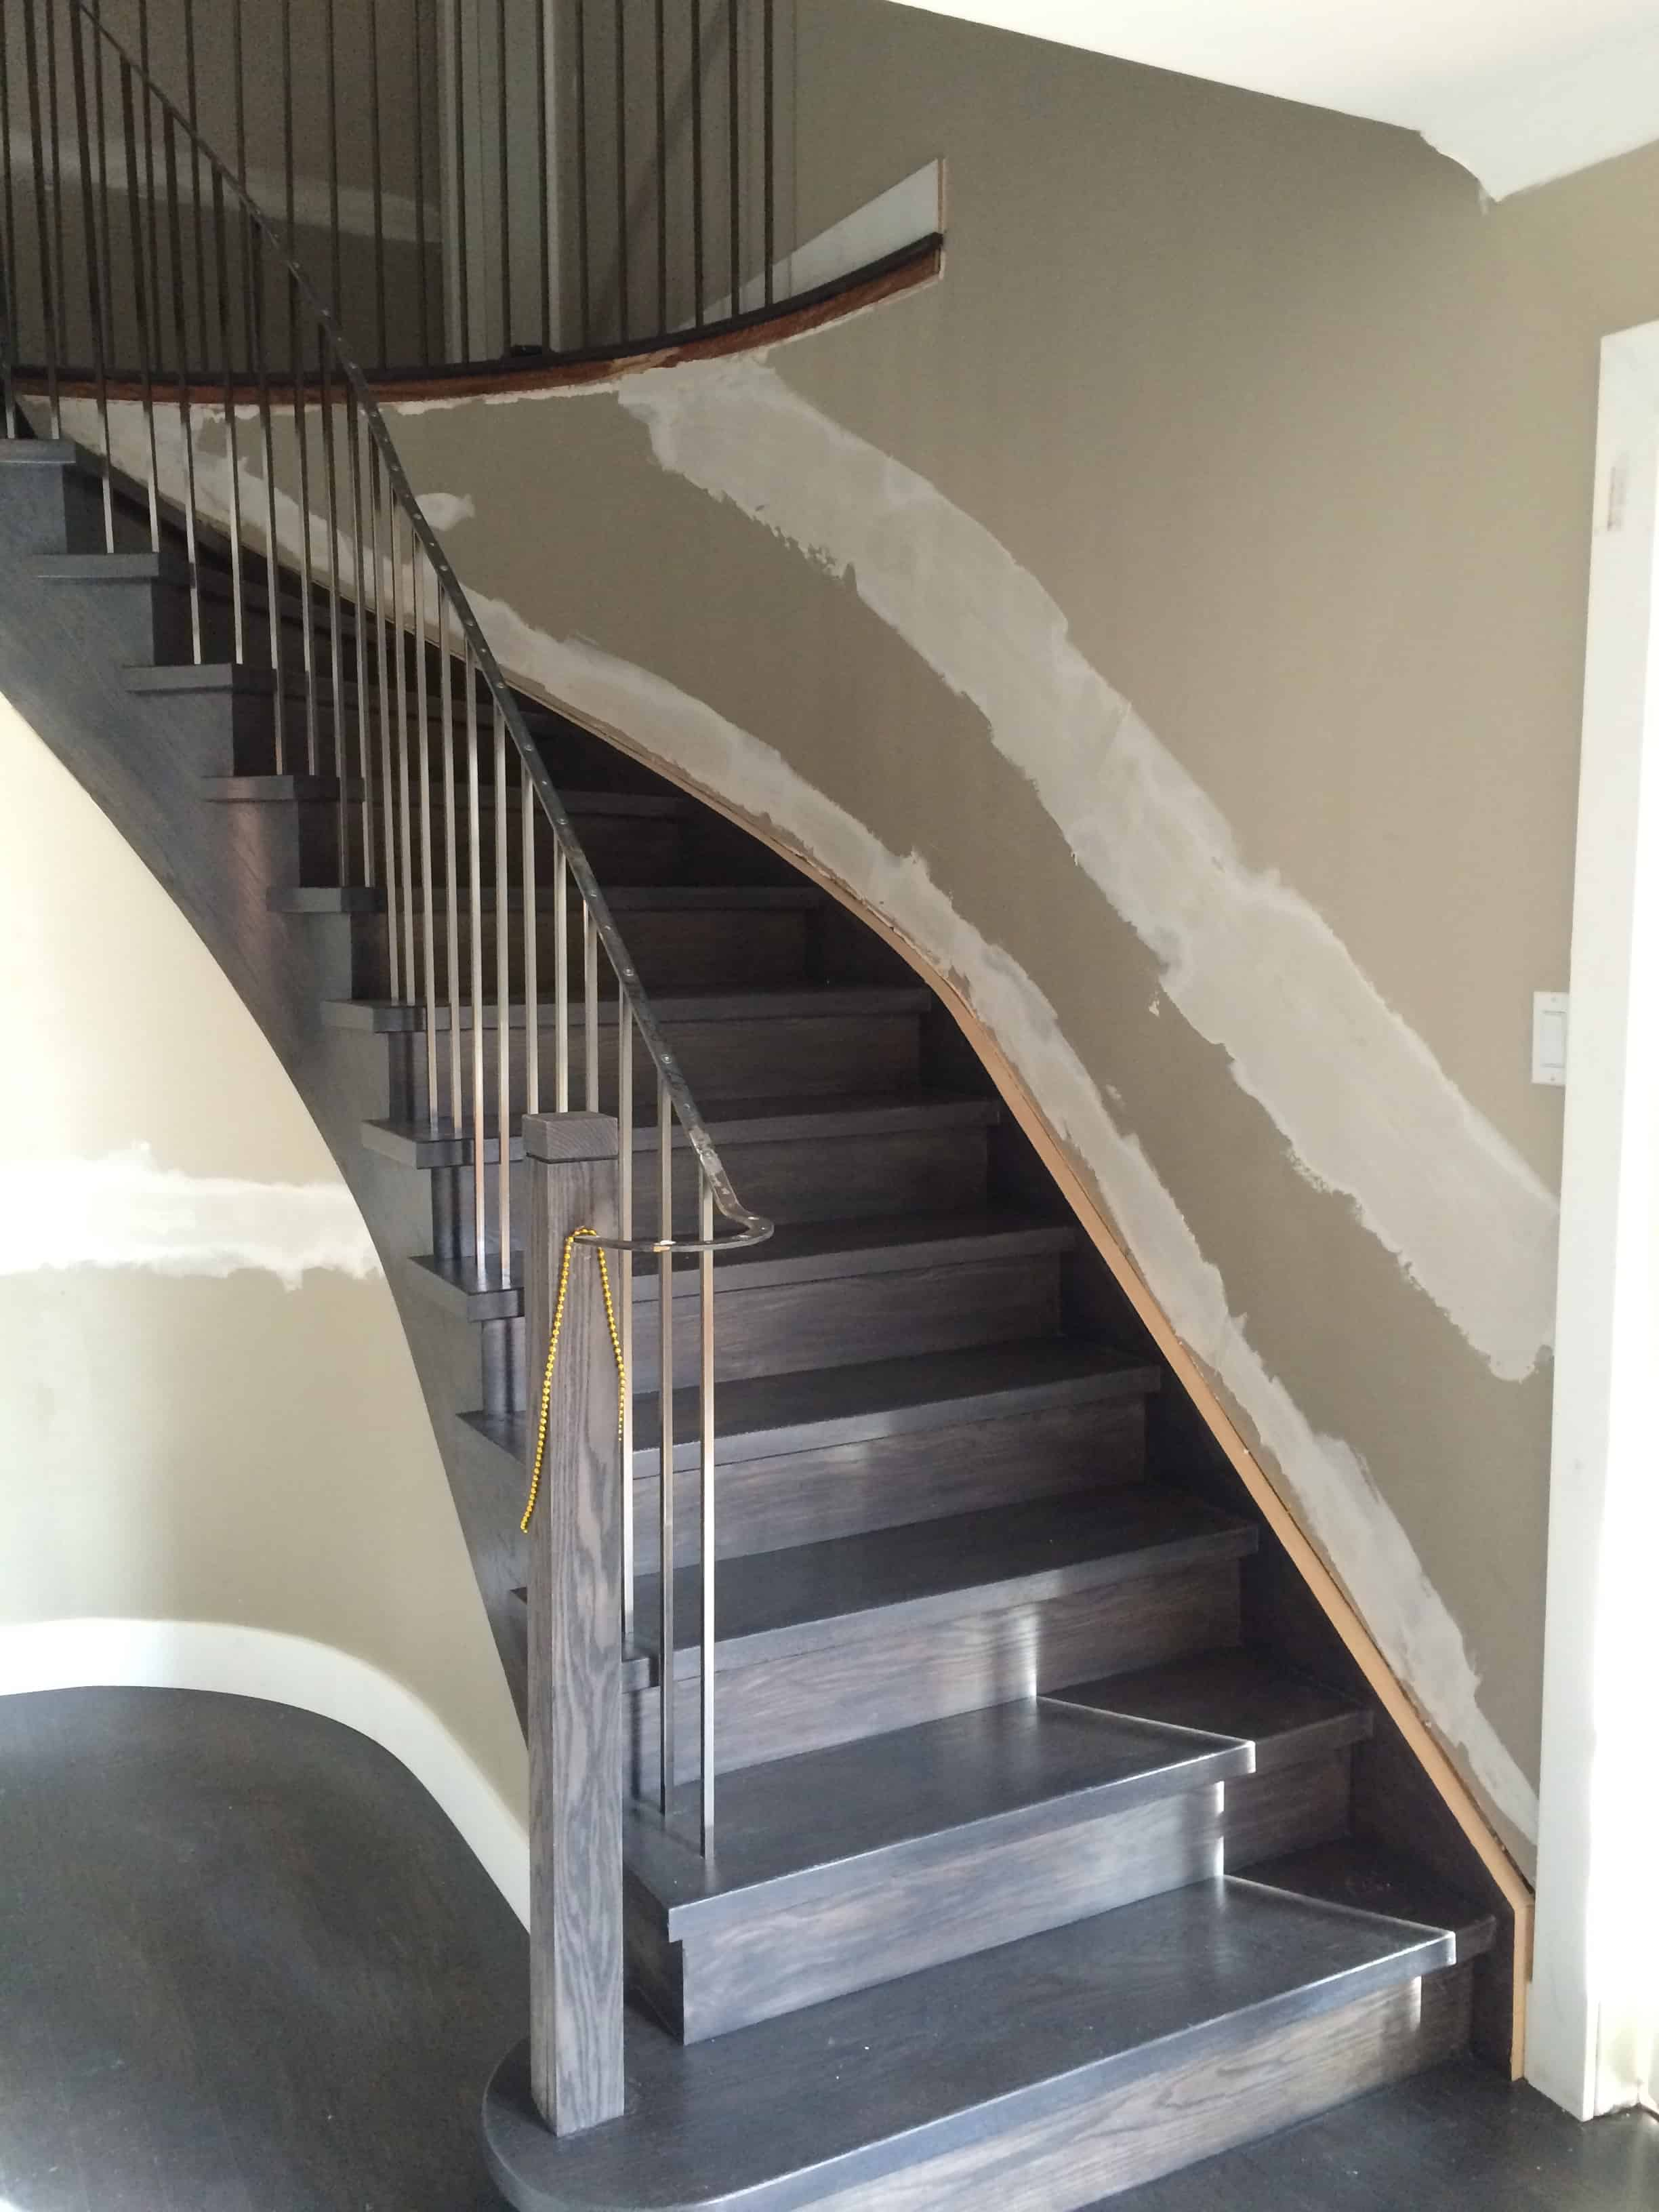 Staircase staining with satin urethane